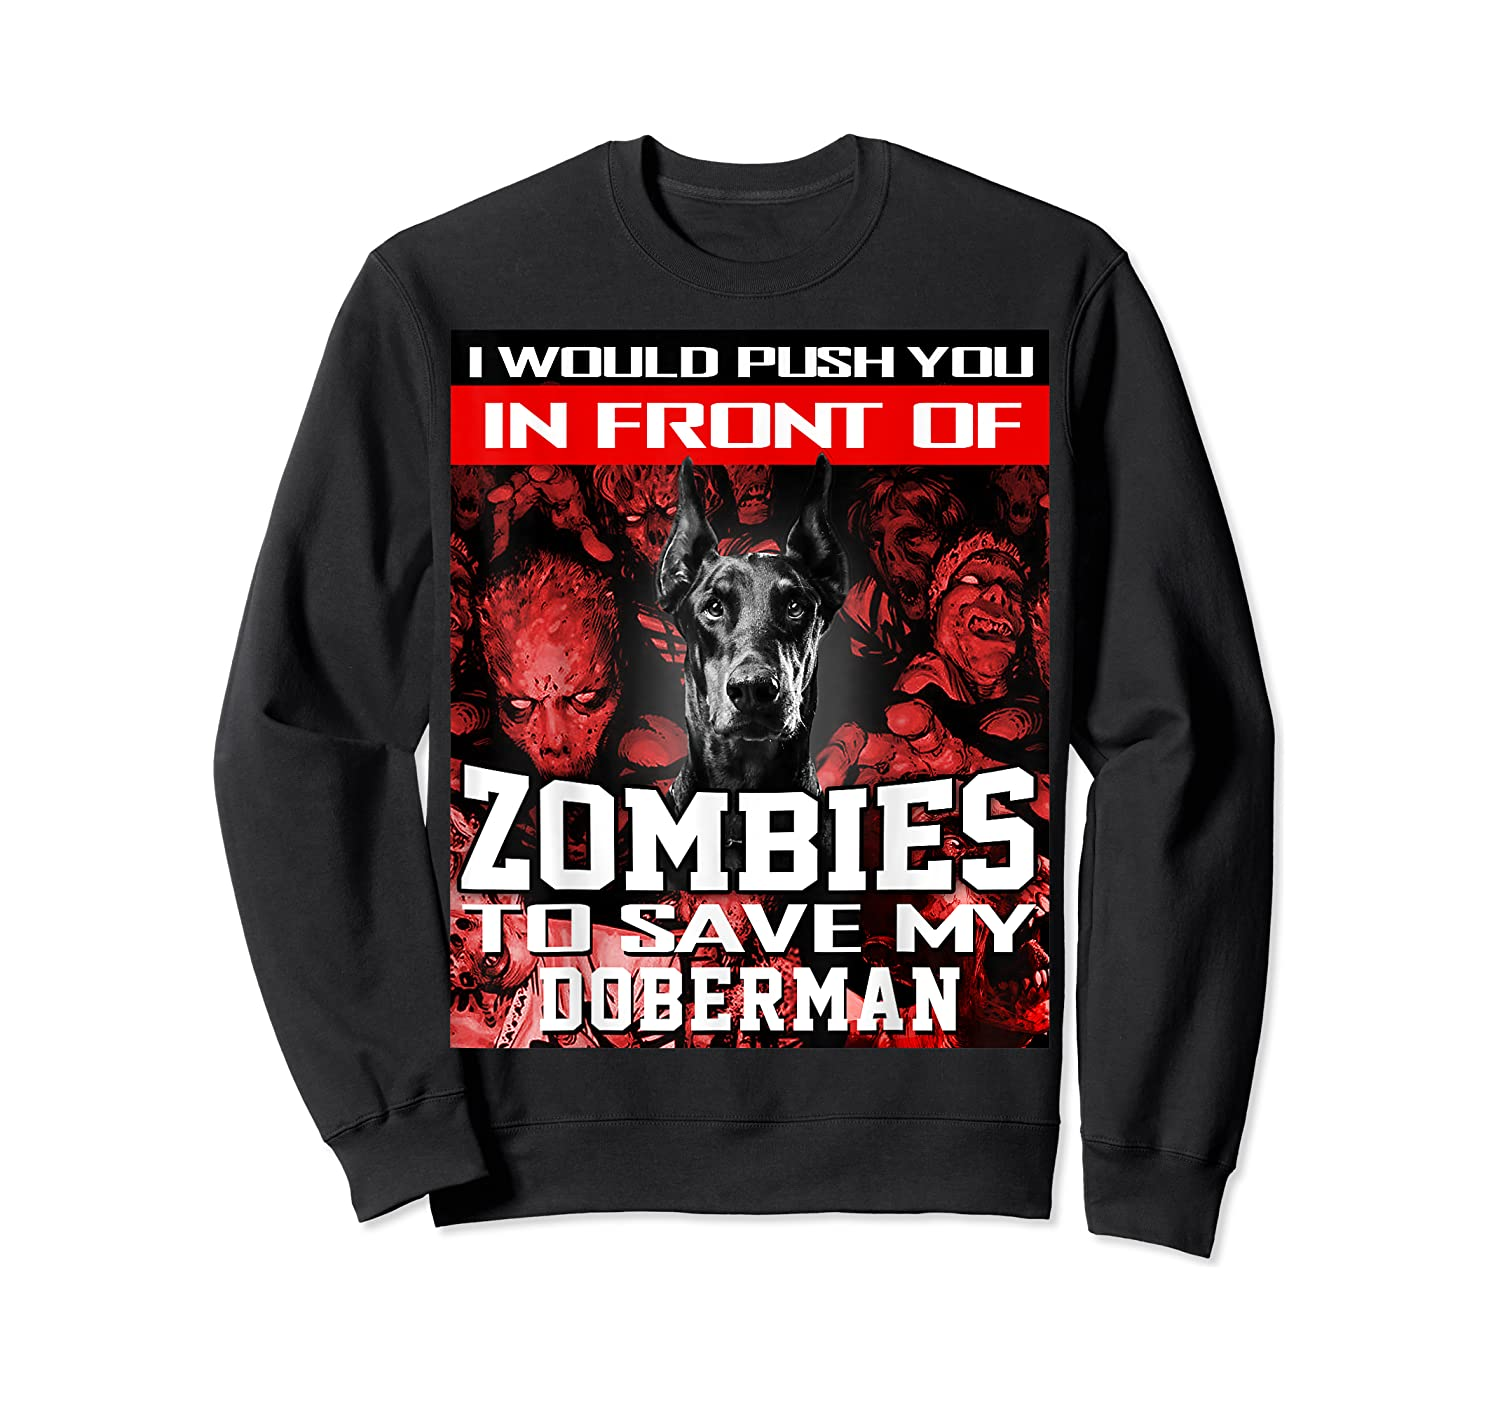 In Front Of Zombies To Save My Doberman Halloween Saying T-shirt Crewneck Sweater